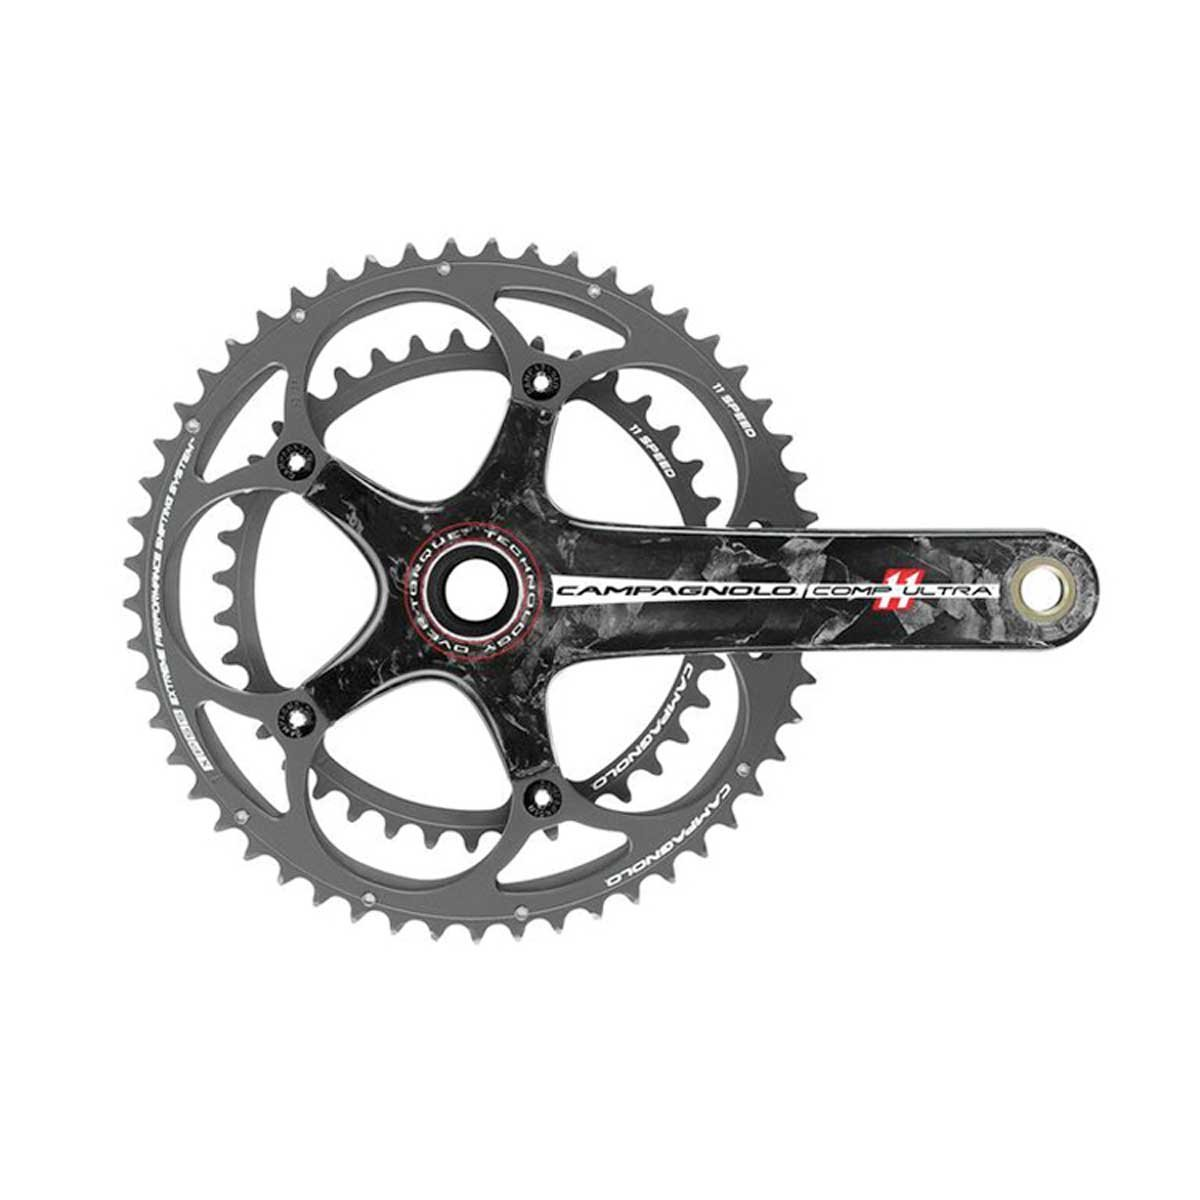 Campagnolo Comp Ultra over-torqueロード自転車クランクセット B00MRRIH2W 34/50 x 170mm|カーボン カーボン 34/50 x 170mm